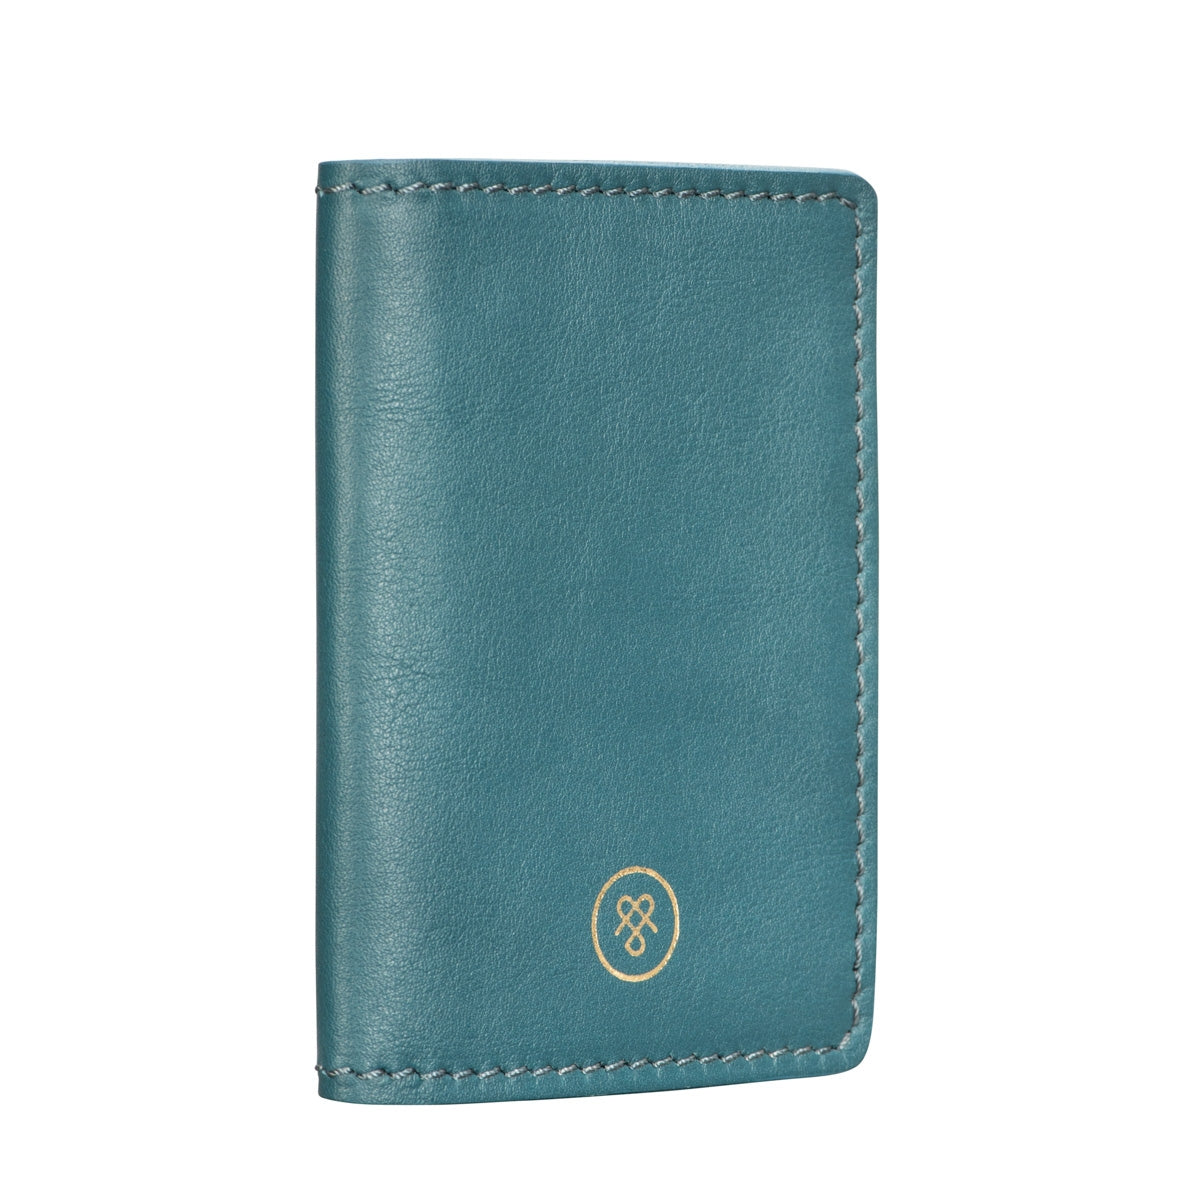 Image 2 of the 'Vallata' Petrol Leather Oyster Card Holder